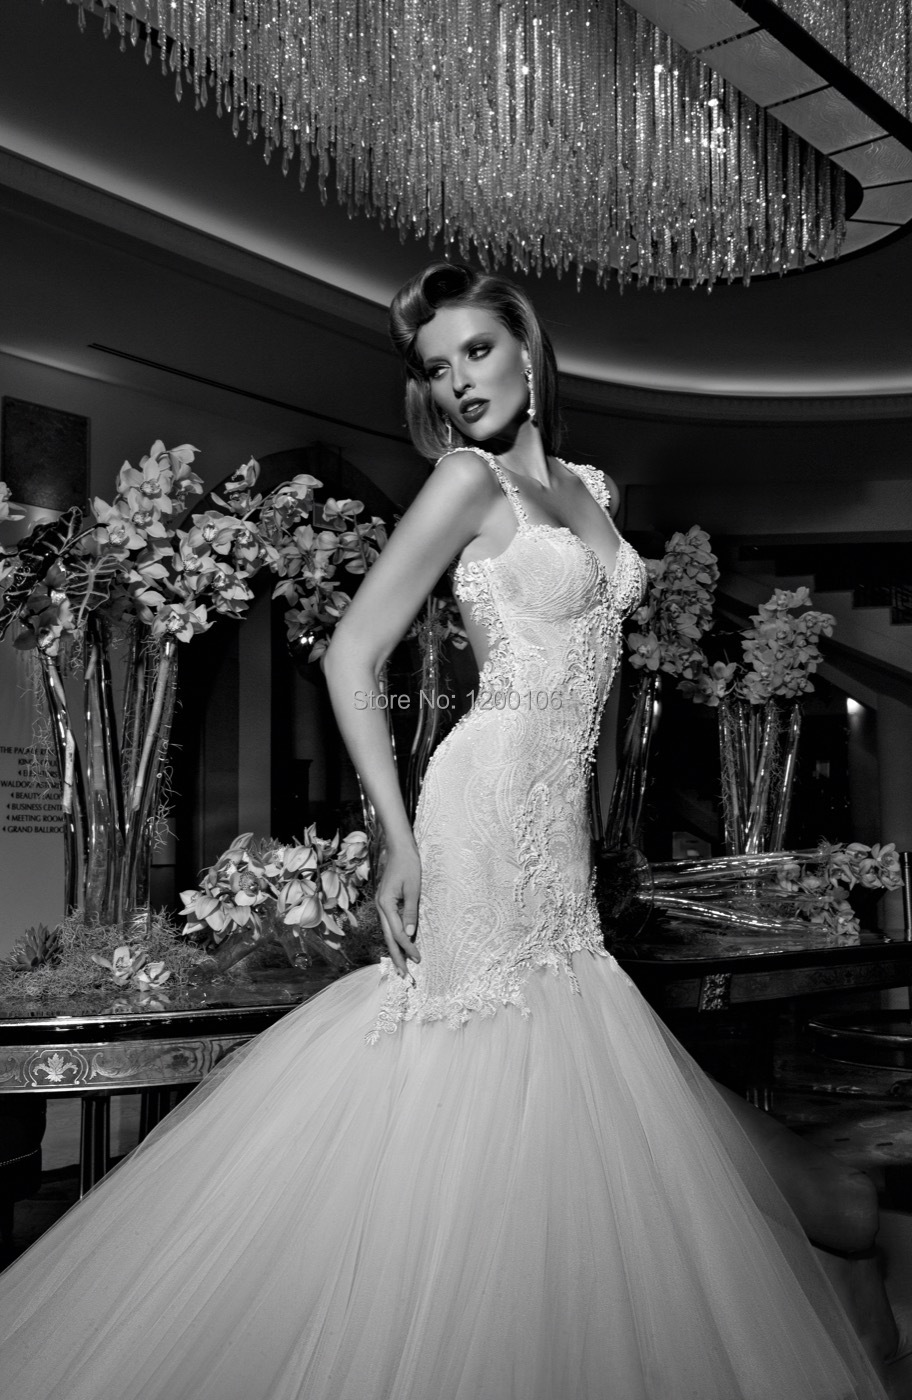 Wedding Dresses Rental Nyc. rent wedding dresses wedding dresses ...